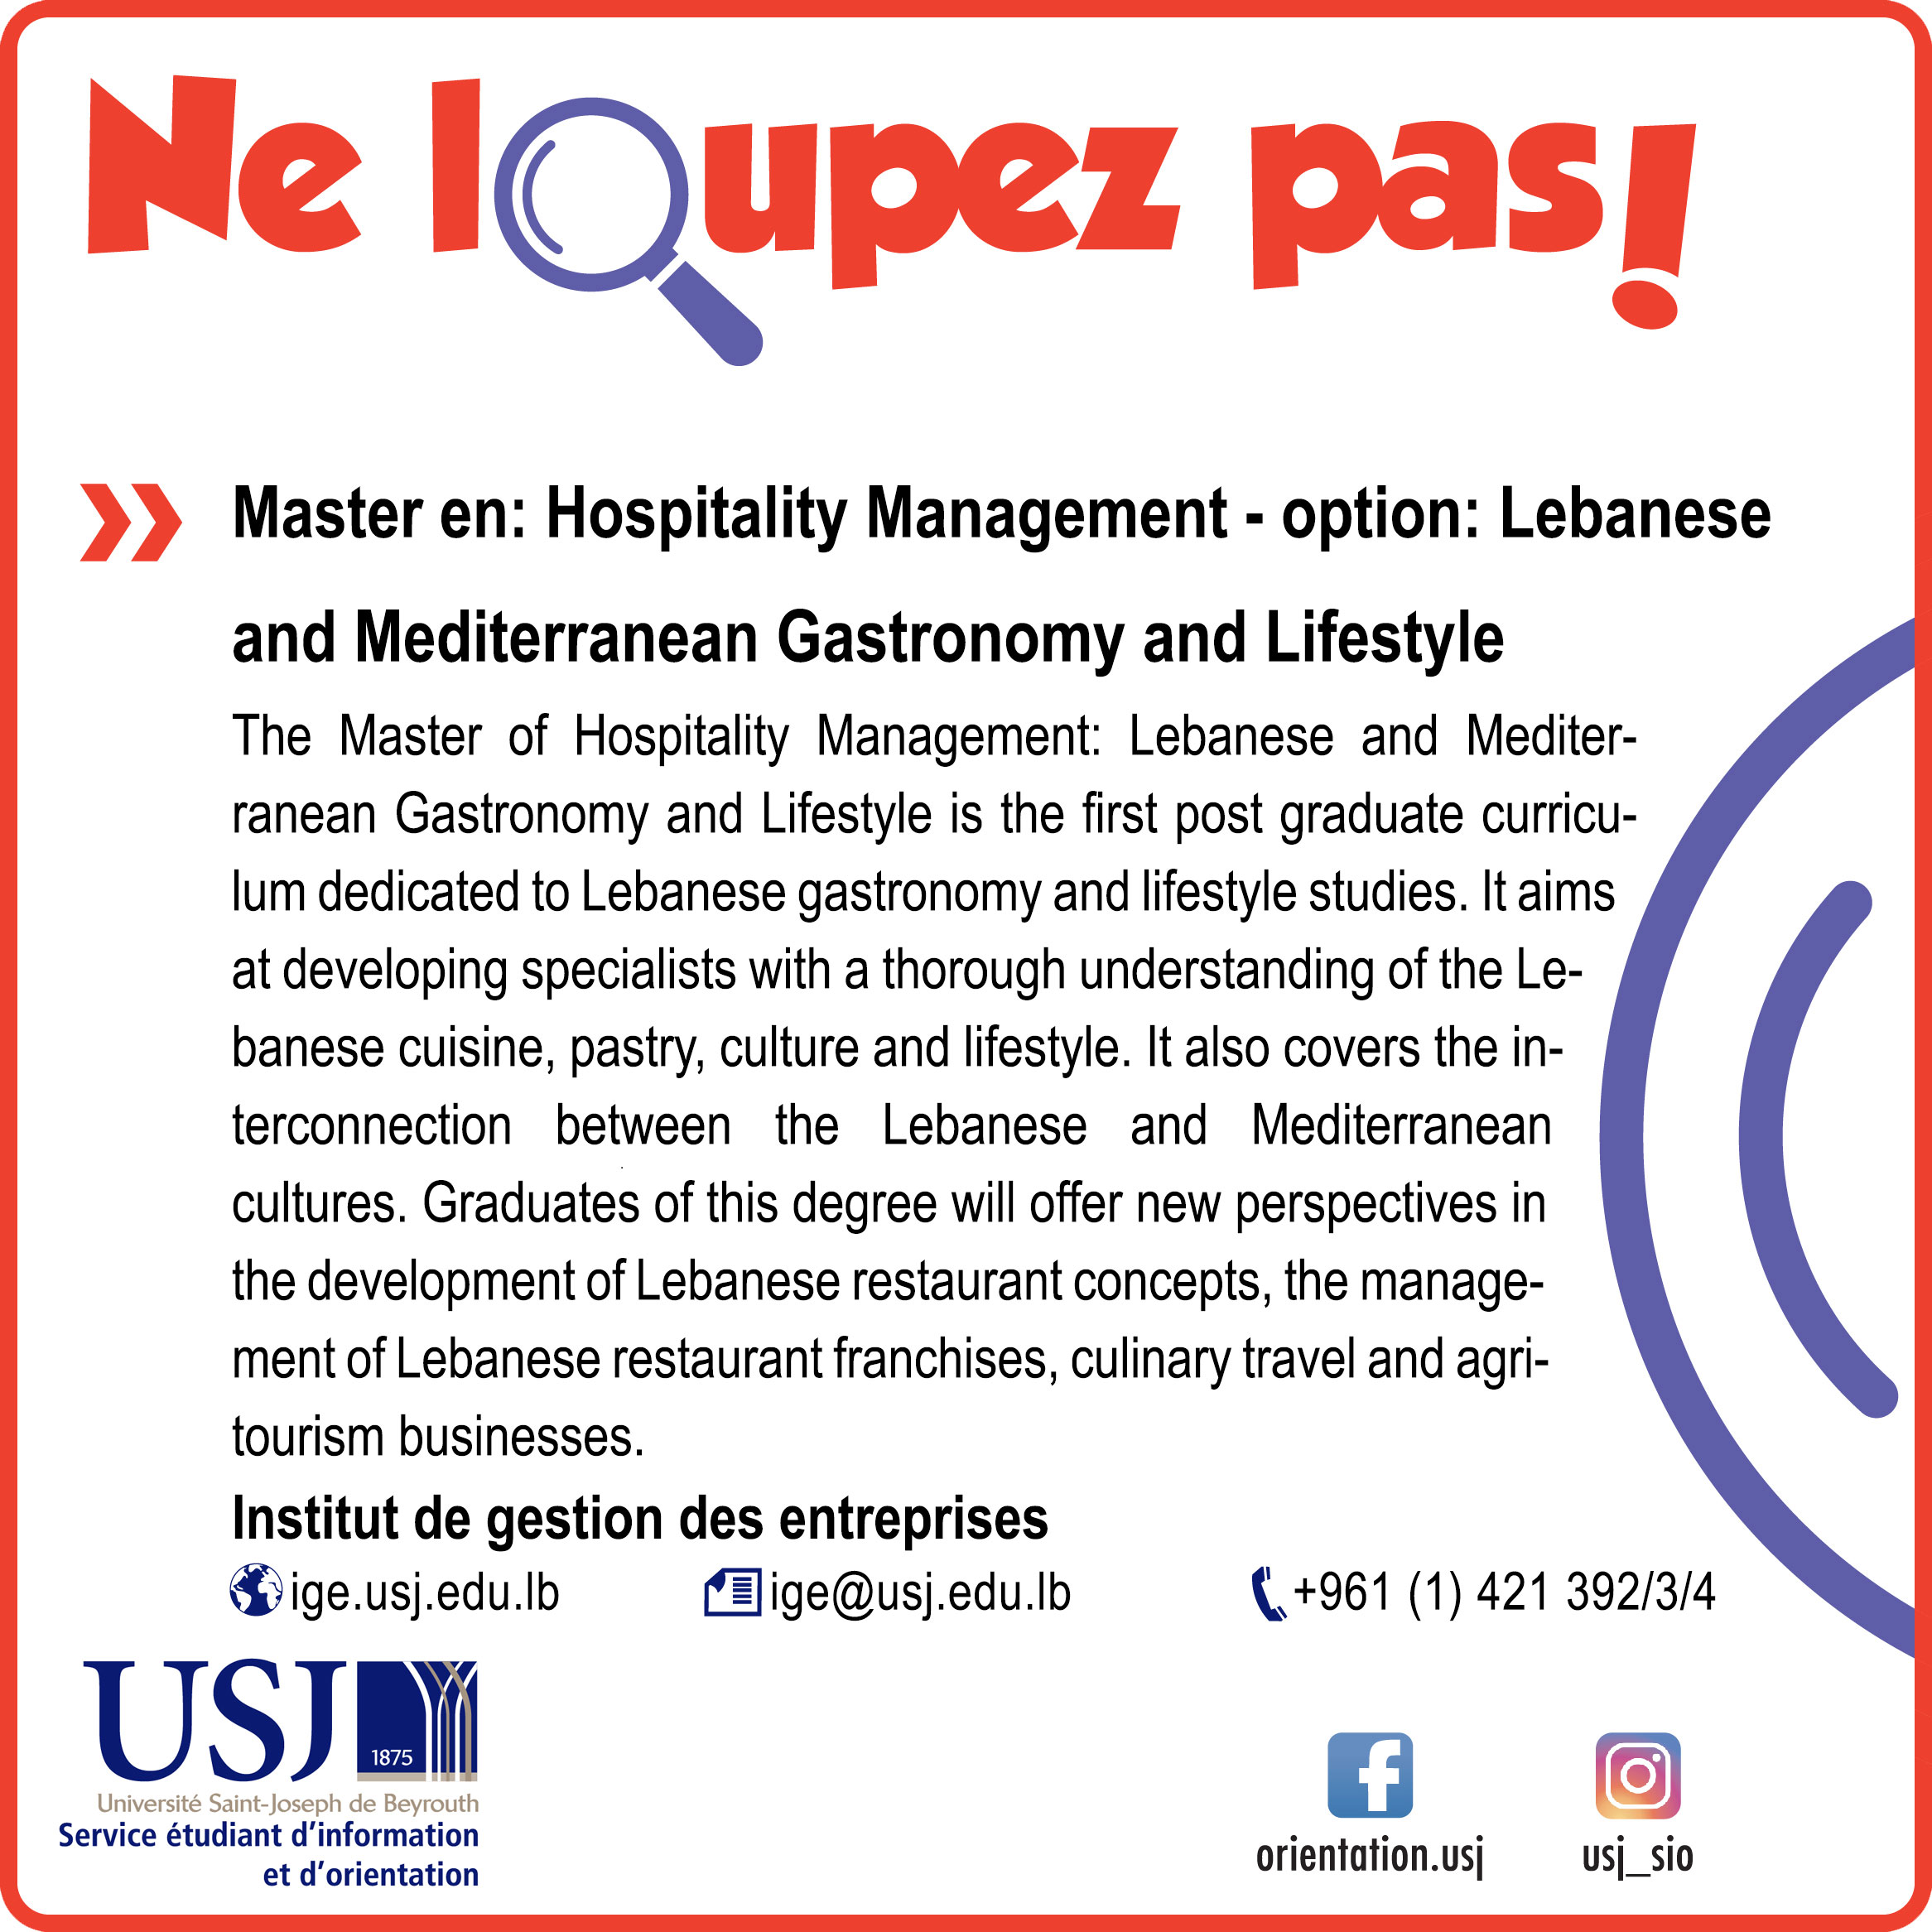 Master en: Hospitality Management - option: Lebanese and Mediterranean Gastronomy and Lifestyle